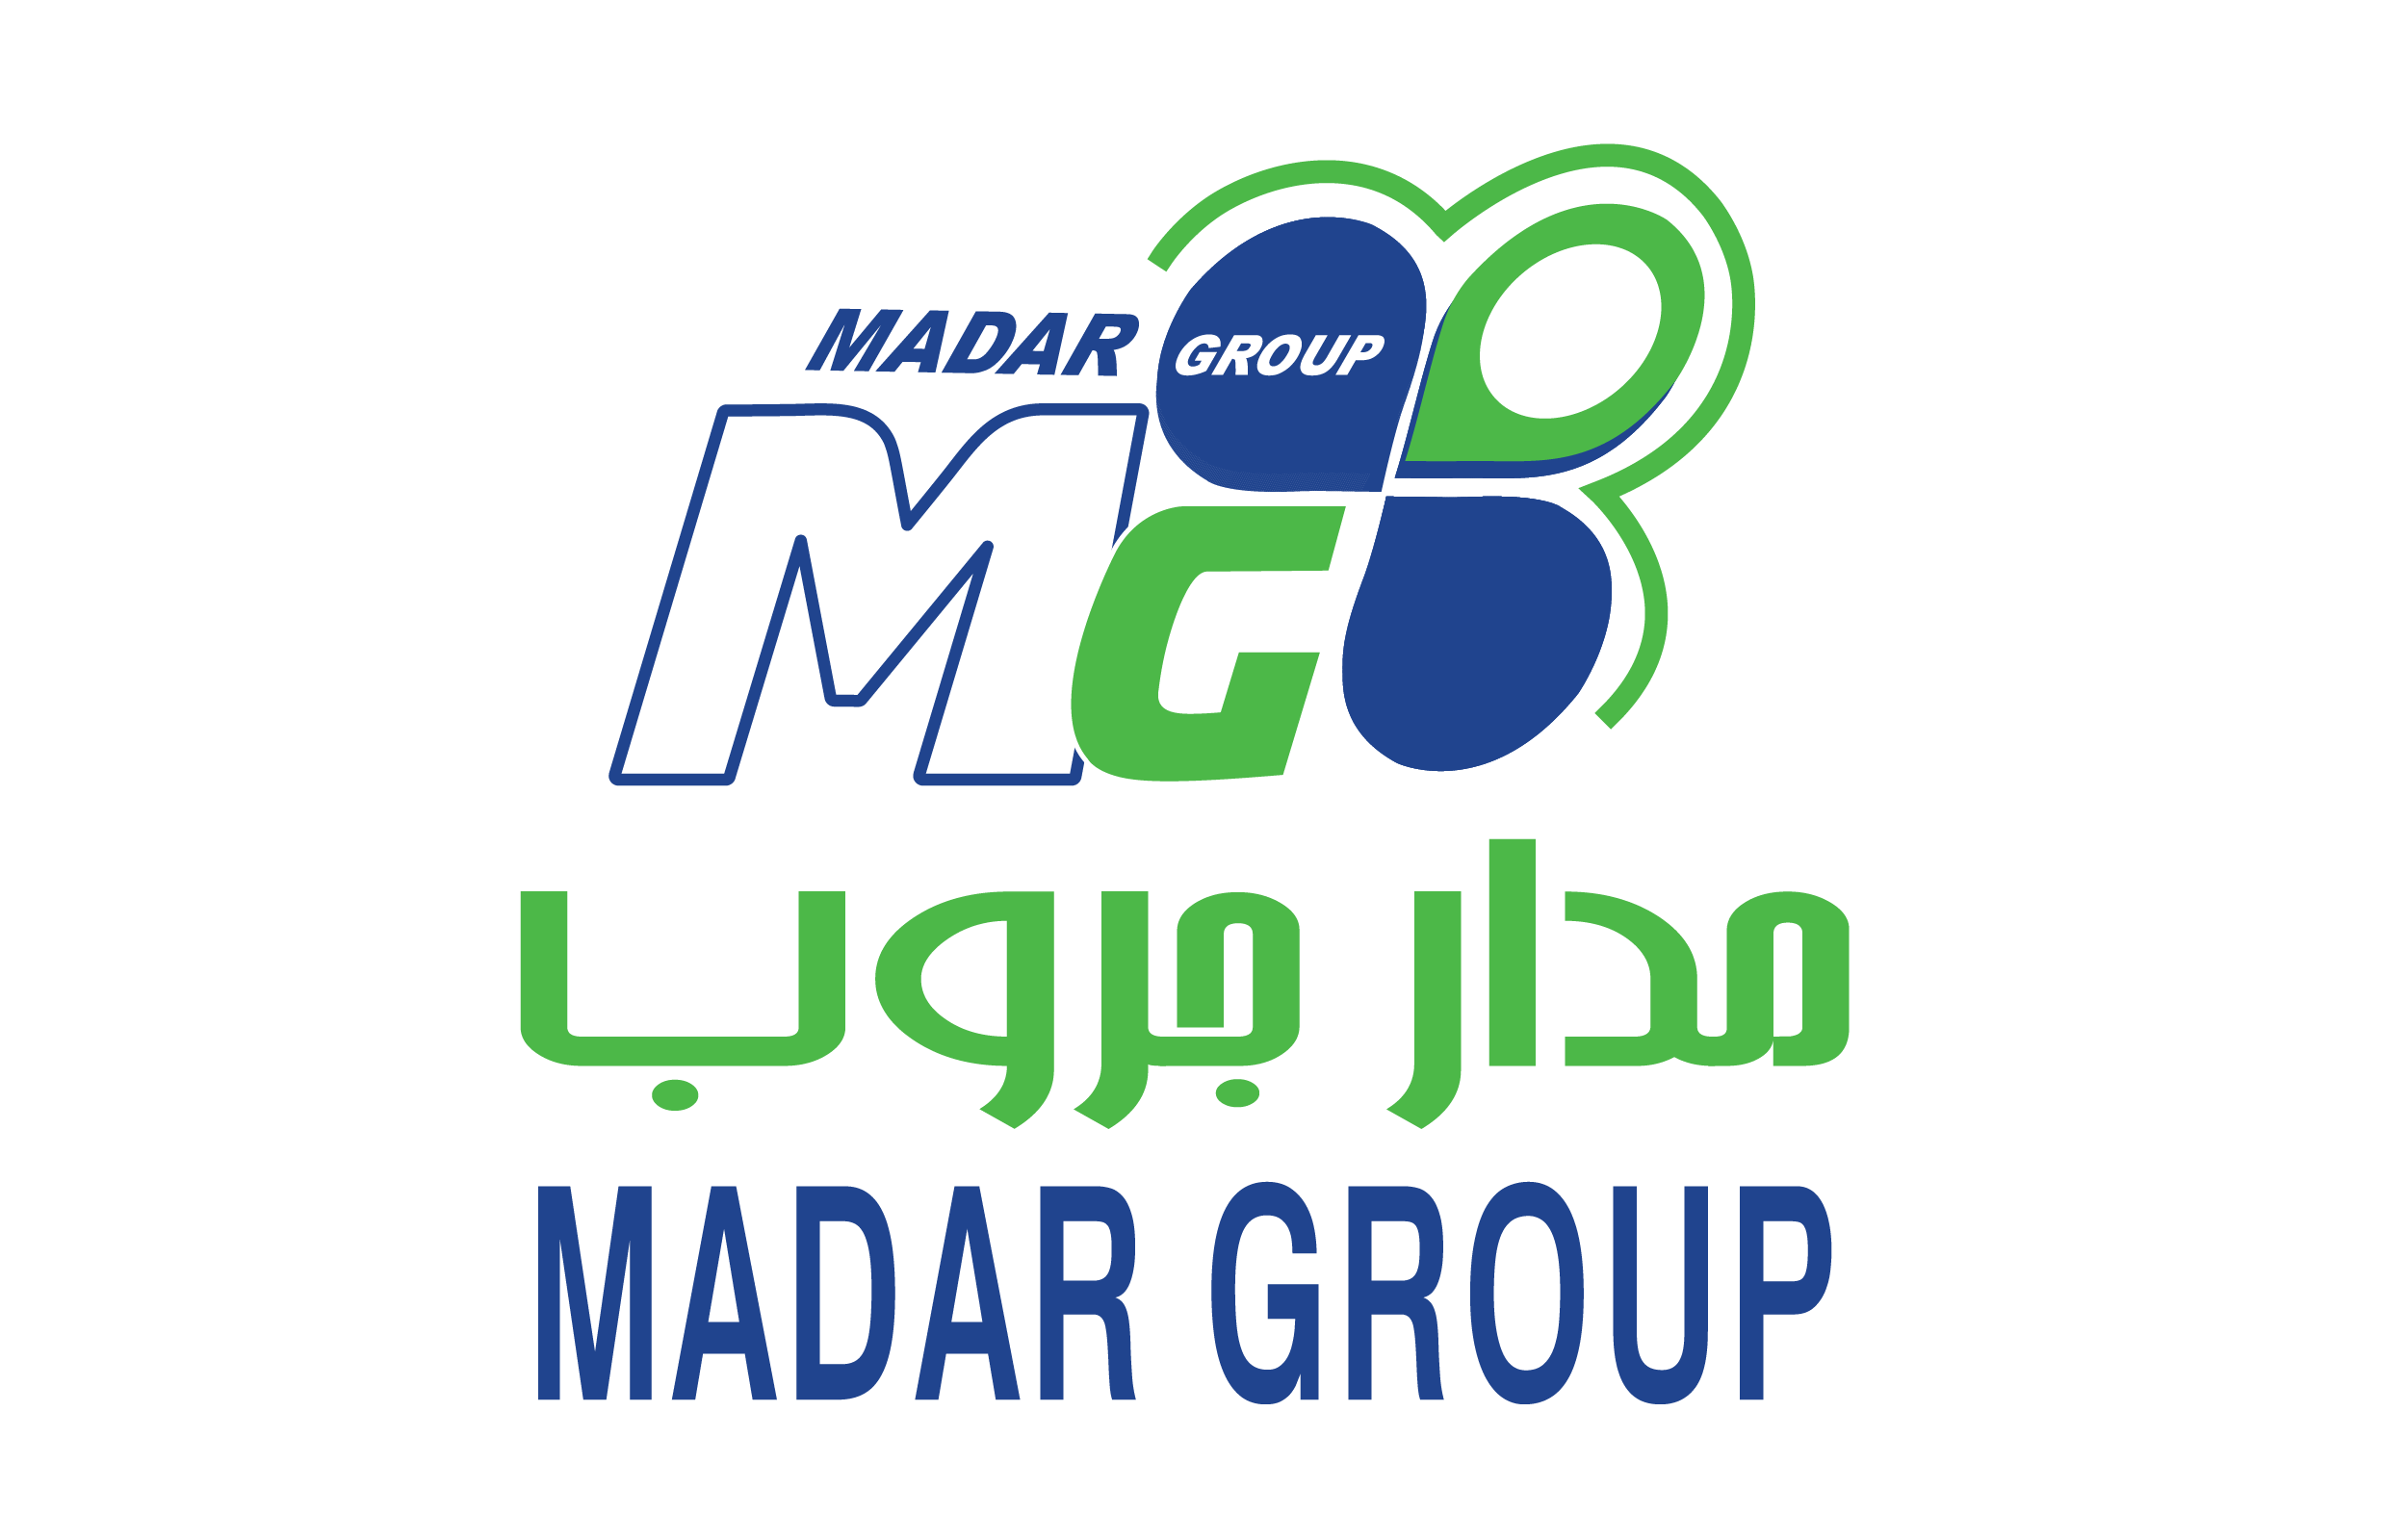 Madar Group was founded in 1986 by Daaboul Family.  Madar Holding Int, specialized in FMCG Home Care, Personal Care products and diapers manufacturing and distribution, the Madar Holding Int.